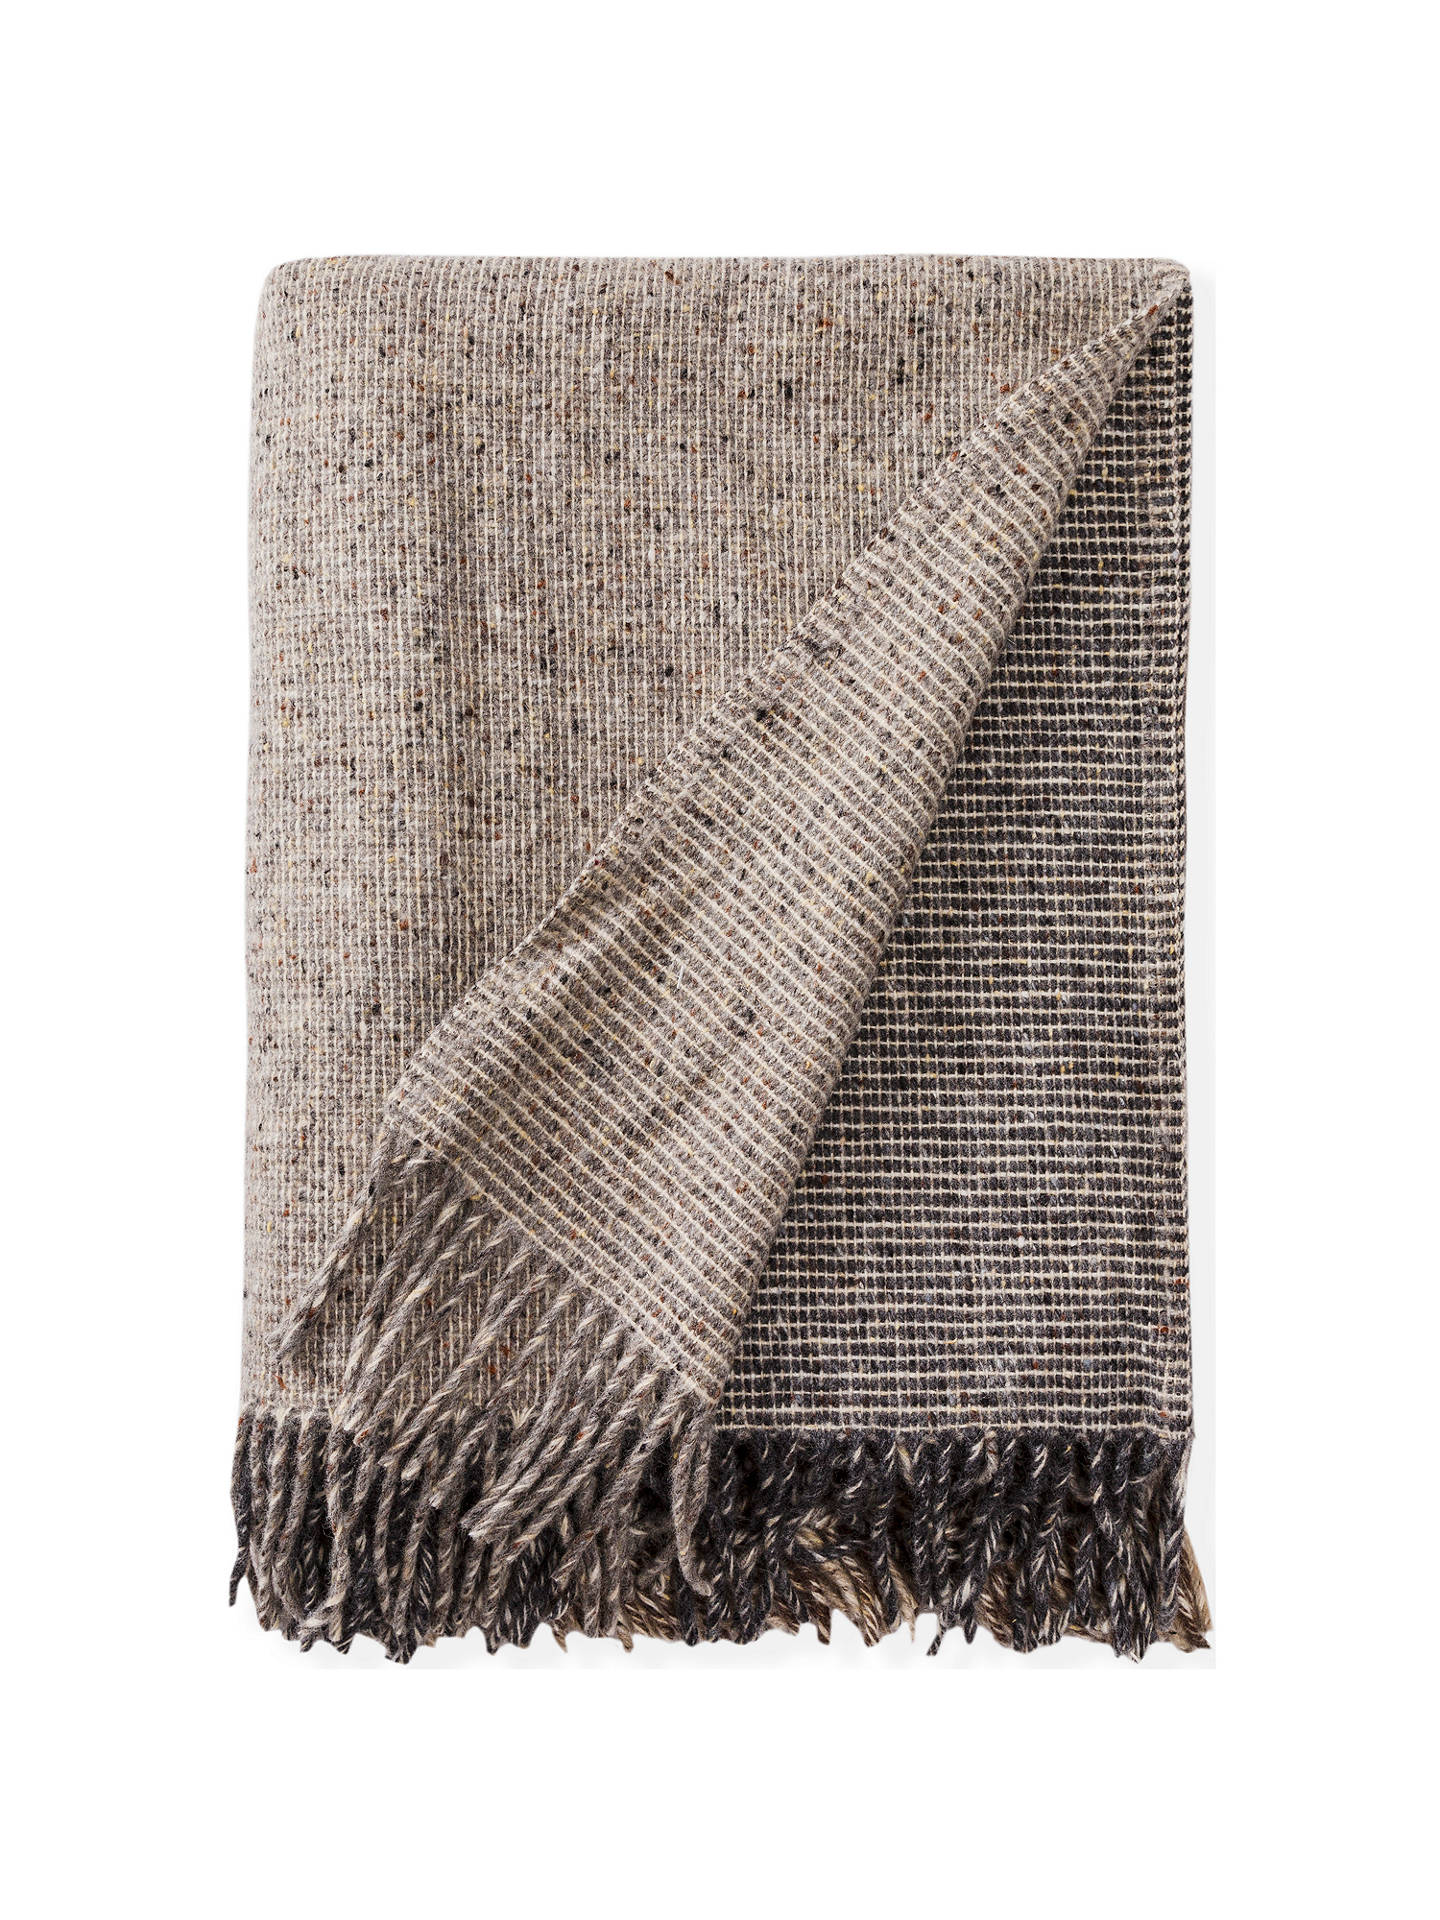 BuyAvoca Artisan Block Wool Throw, Natural Online at johnlewis.com